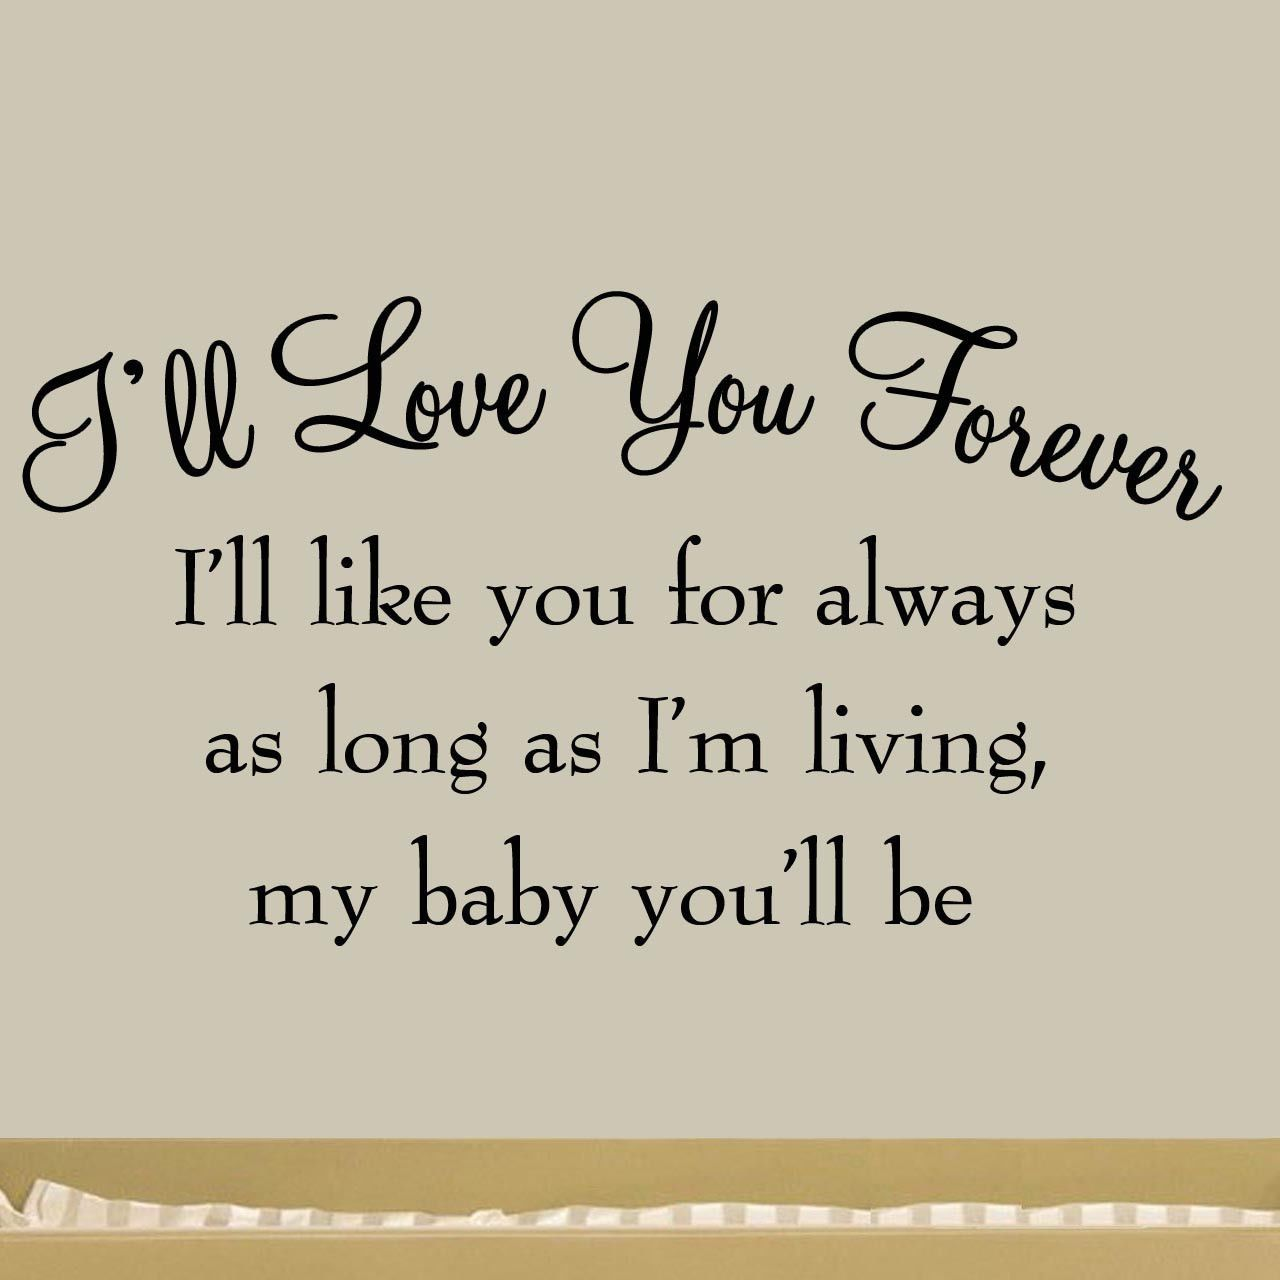 I Ll Love You Forever Quote I'll Love You Forever I'll Like You For Always As Long As I'm